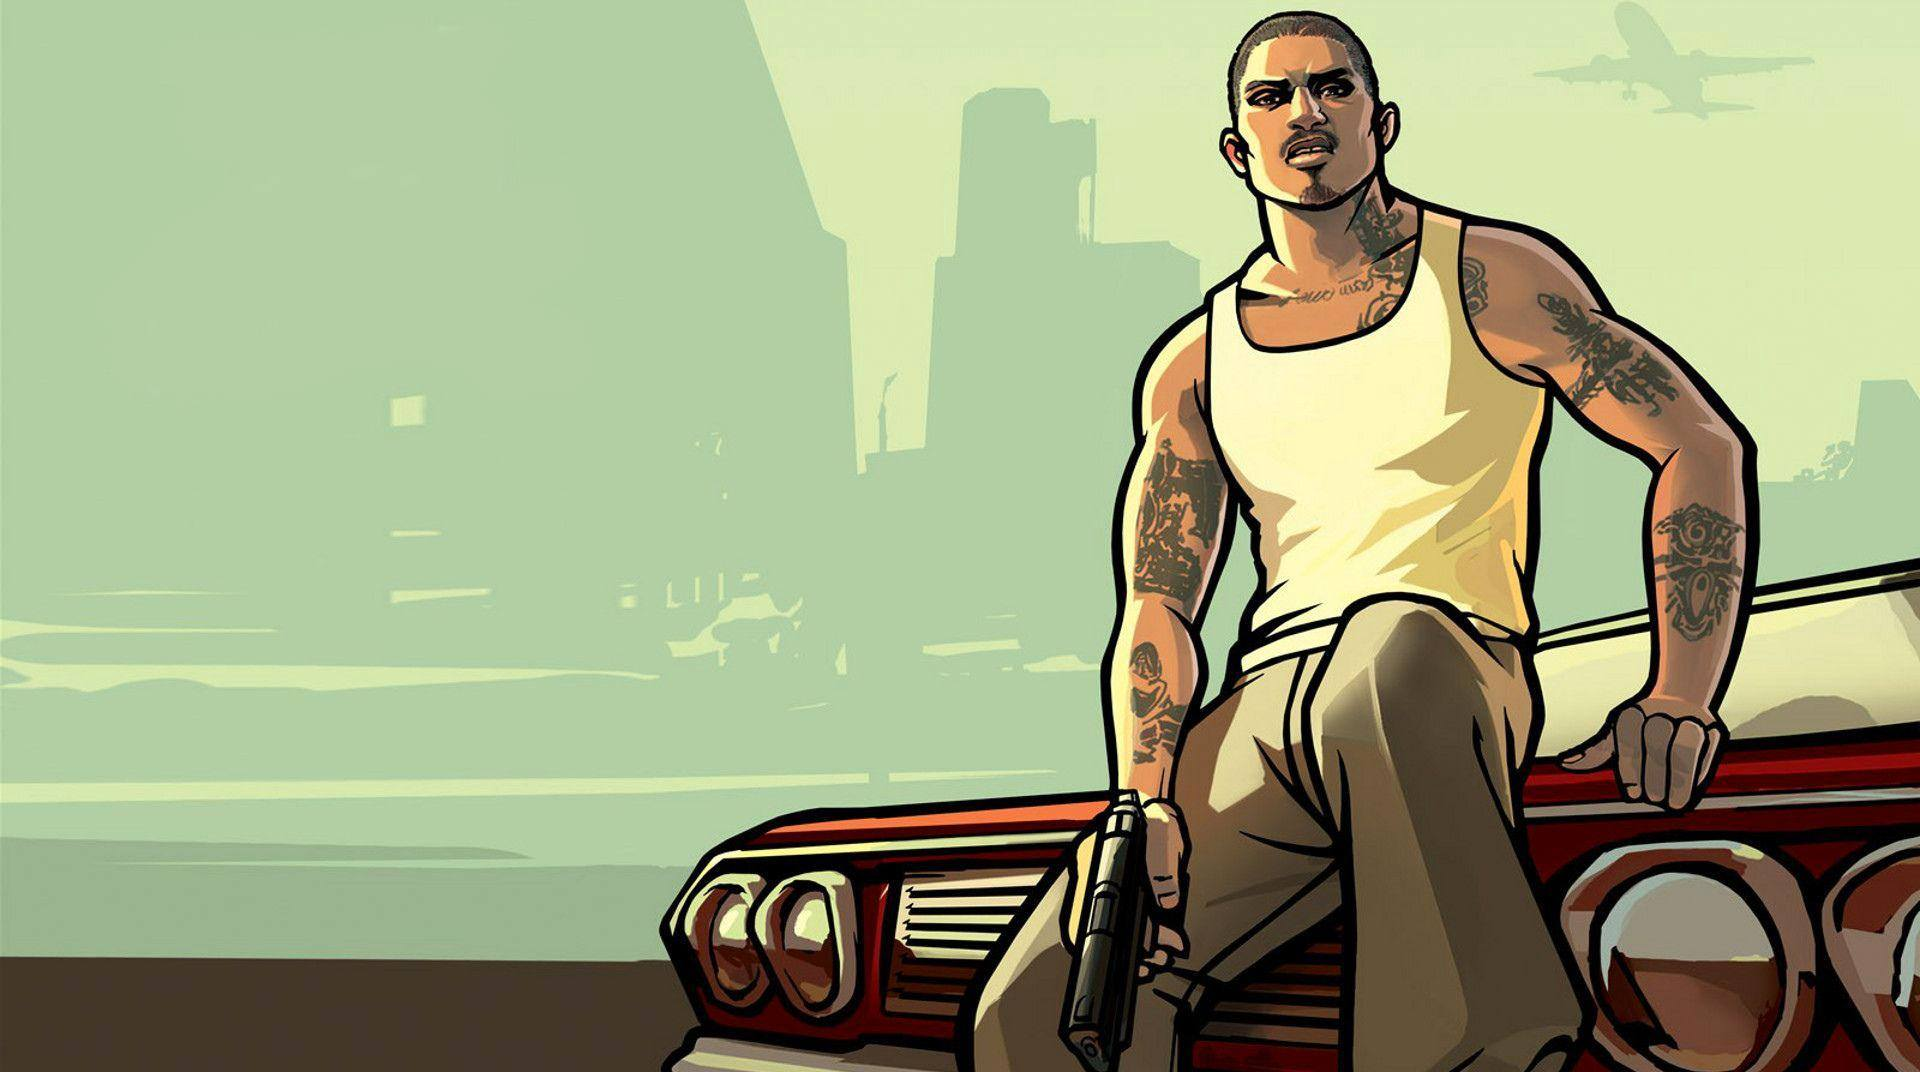 GTA San Andreas HD Wallpaper